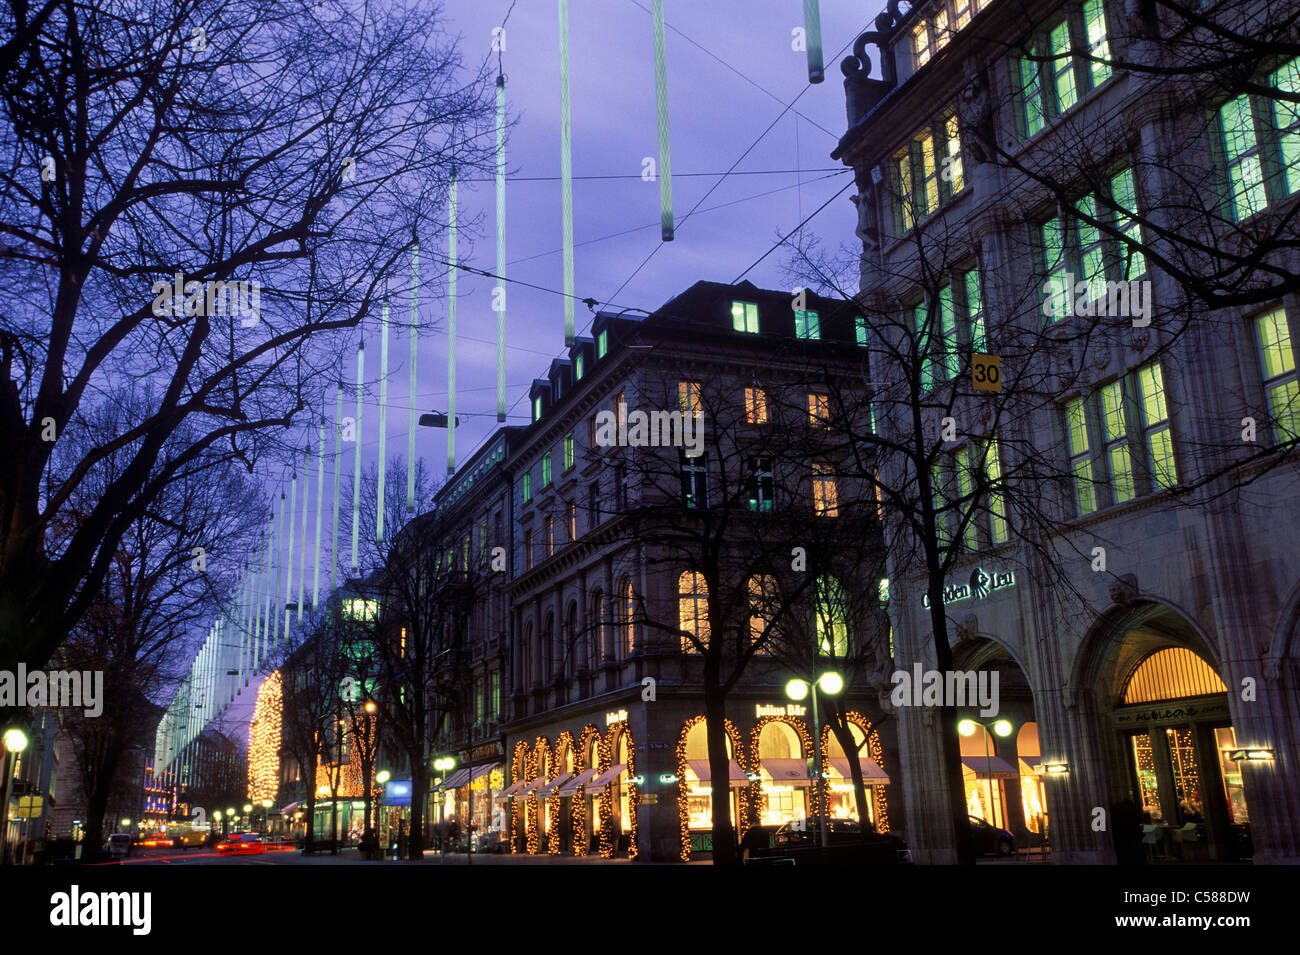 Switzerland, Europe, building, market, Christmas, Winter, night, Bahnhofstrasse, old town, city, Zurich, - Stock Image